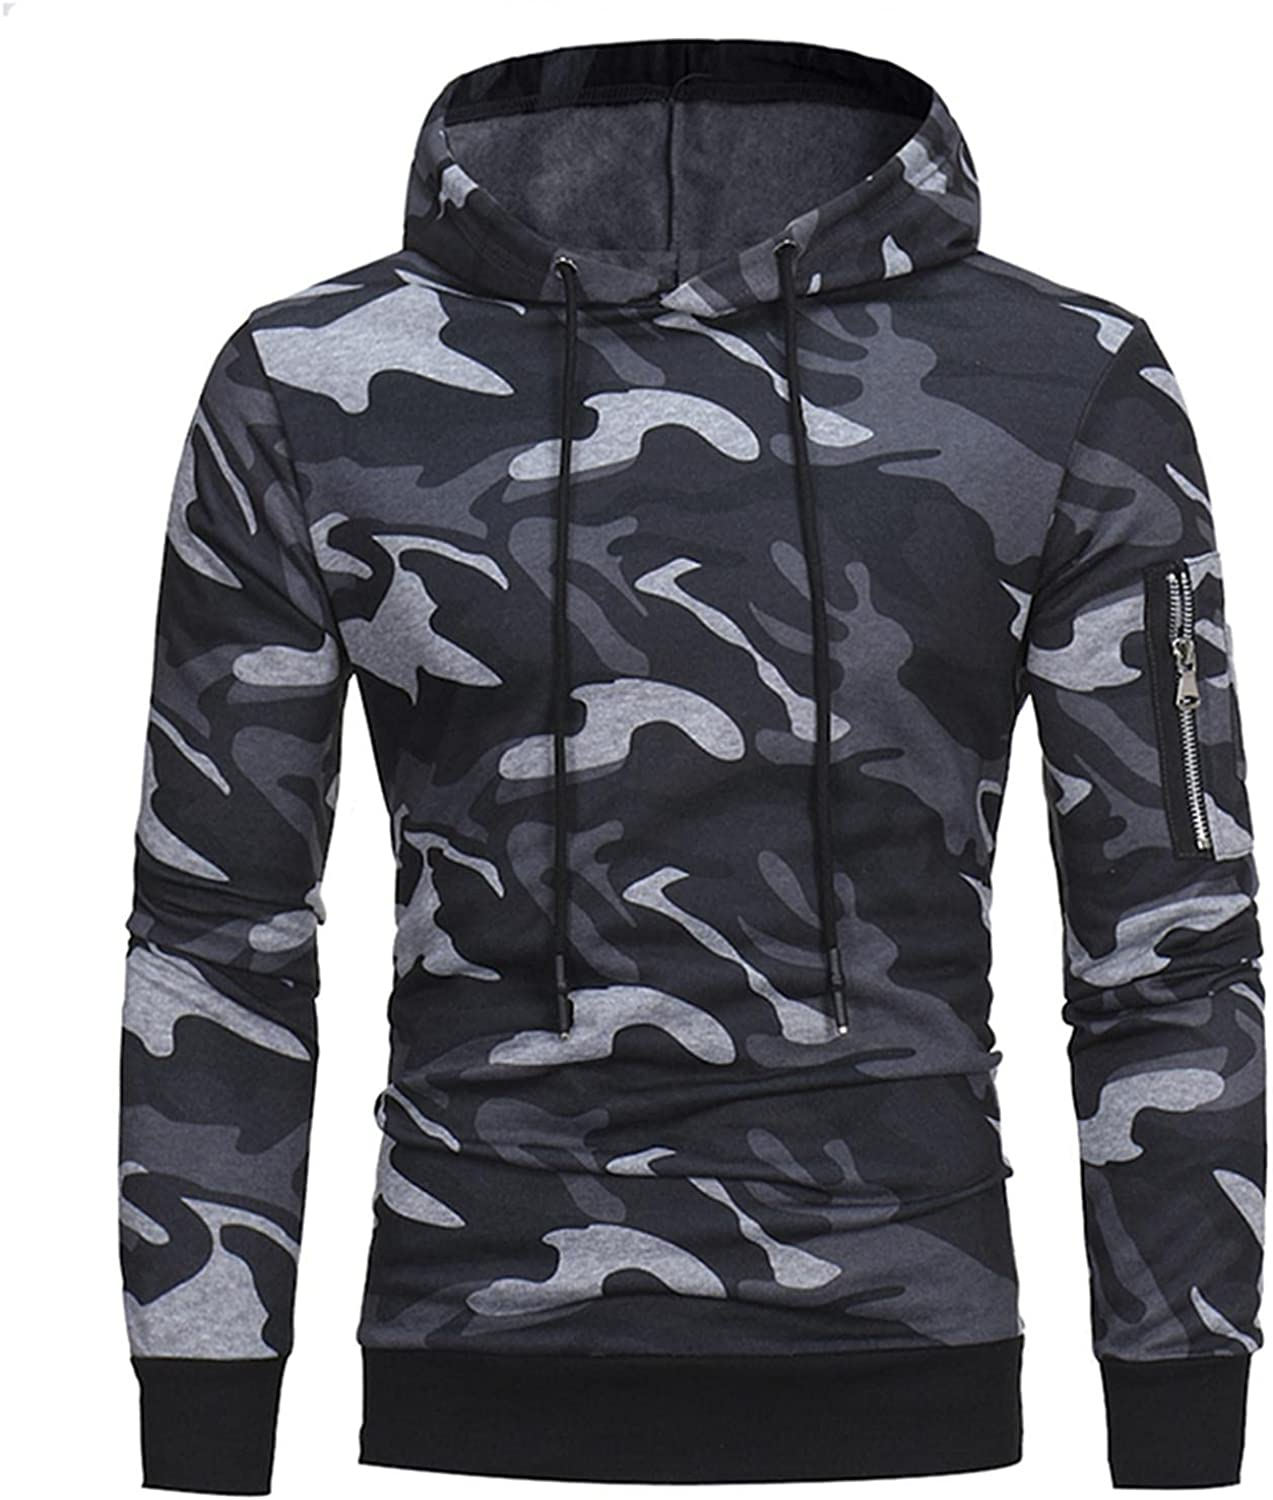 Qsctys Mens Hoodie Pullover Camouflage Slim Fit Long Sleeve Ribbed Sweatshirts Hooded Lightweight Fashion Hoodies Outwear